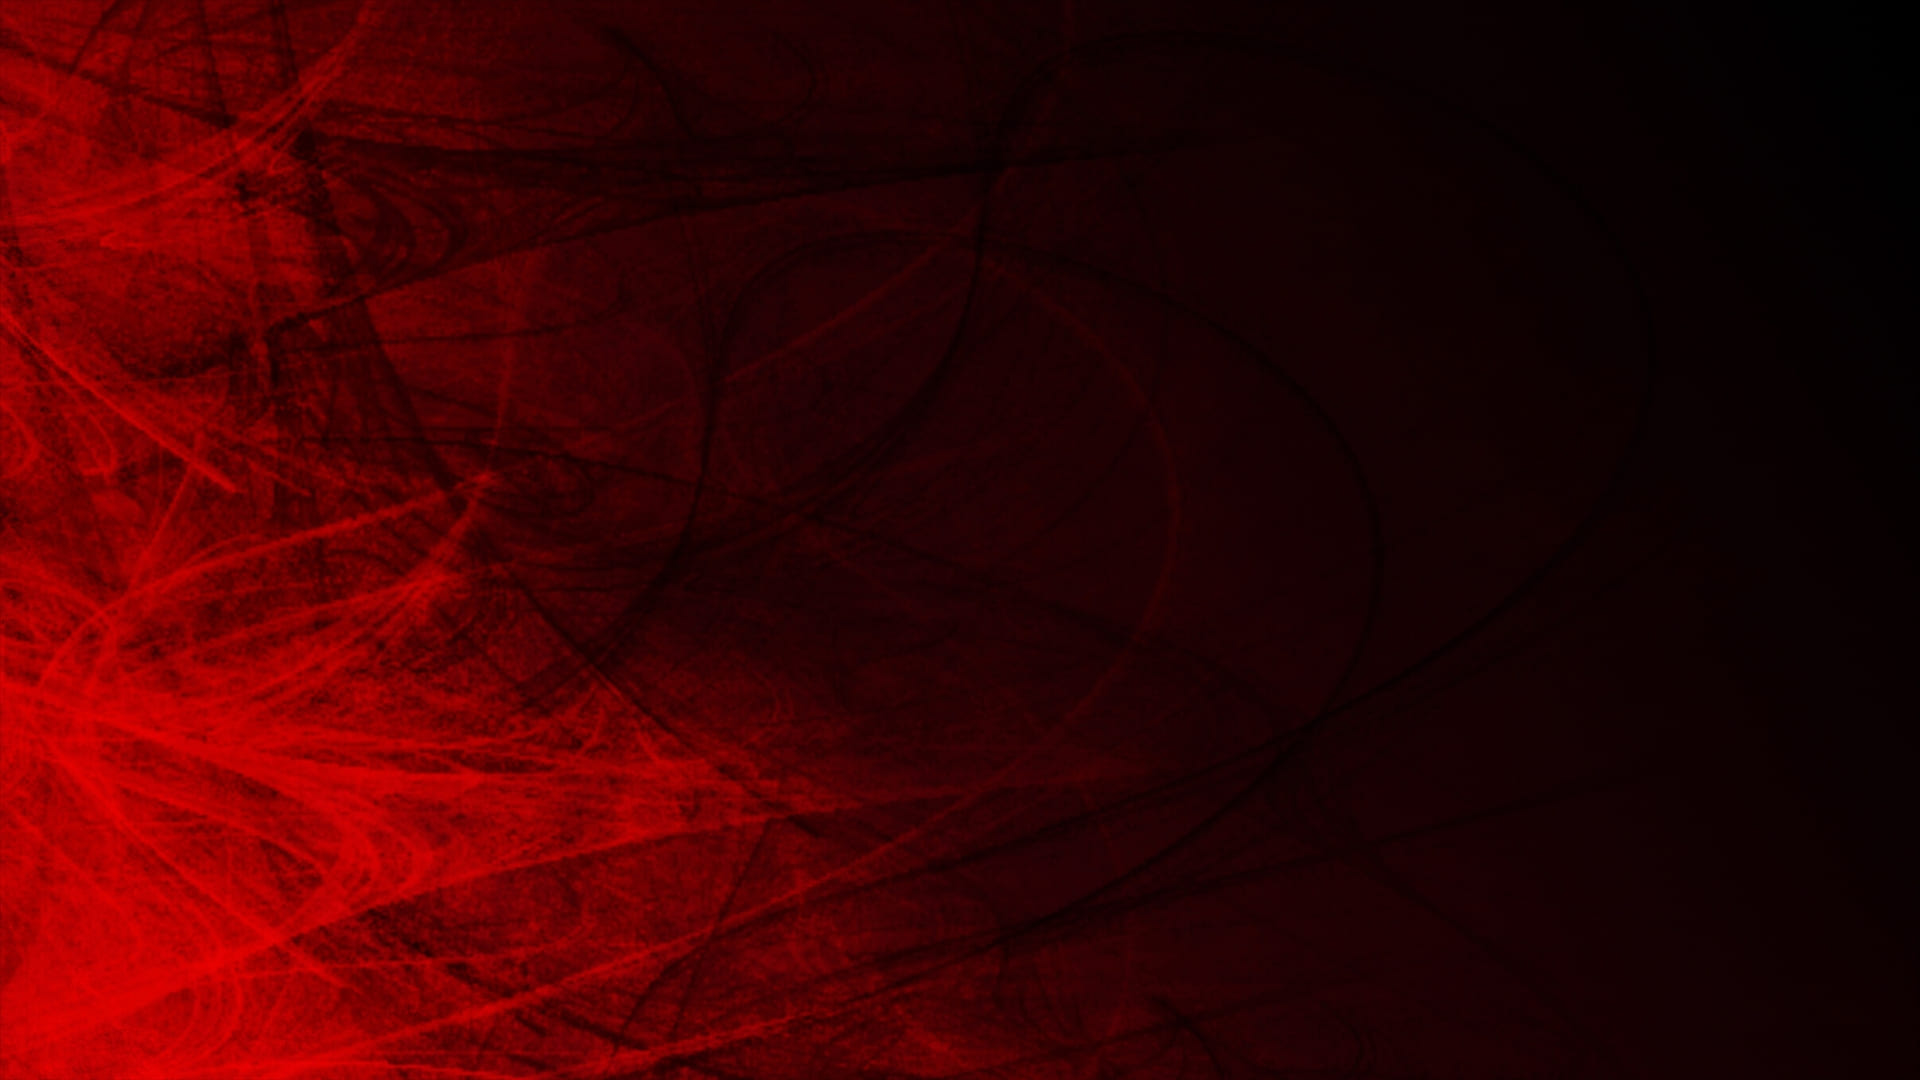 Red and black pattern wallpaper